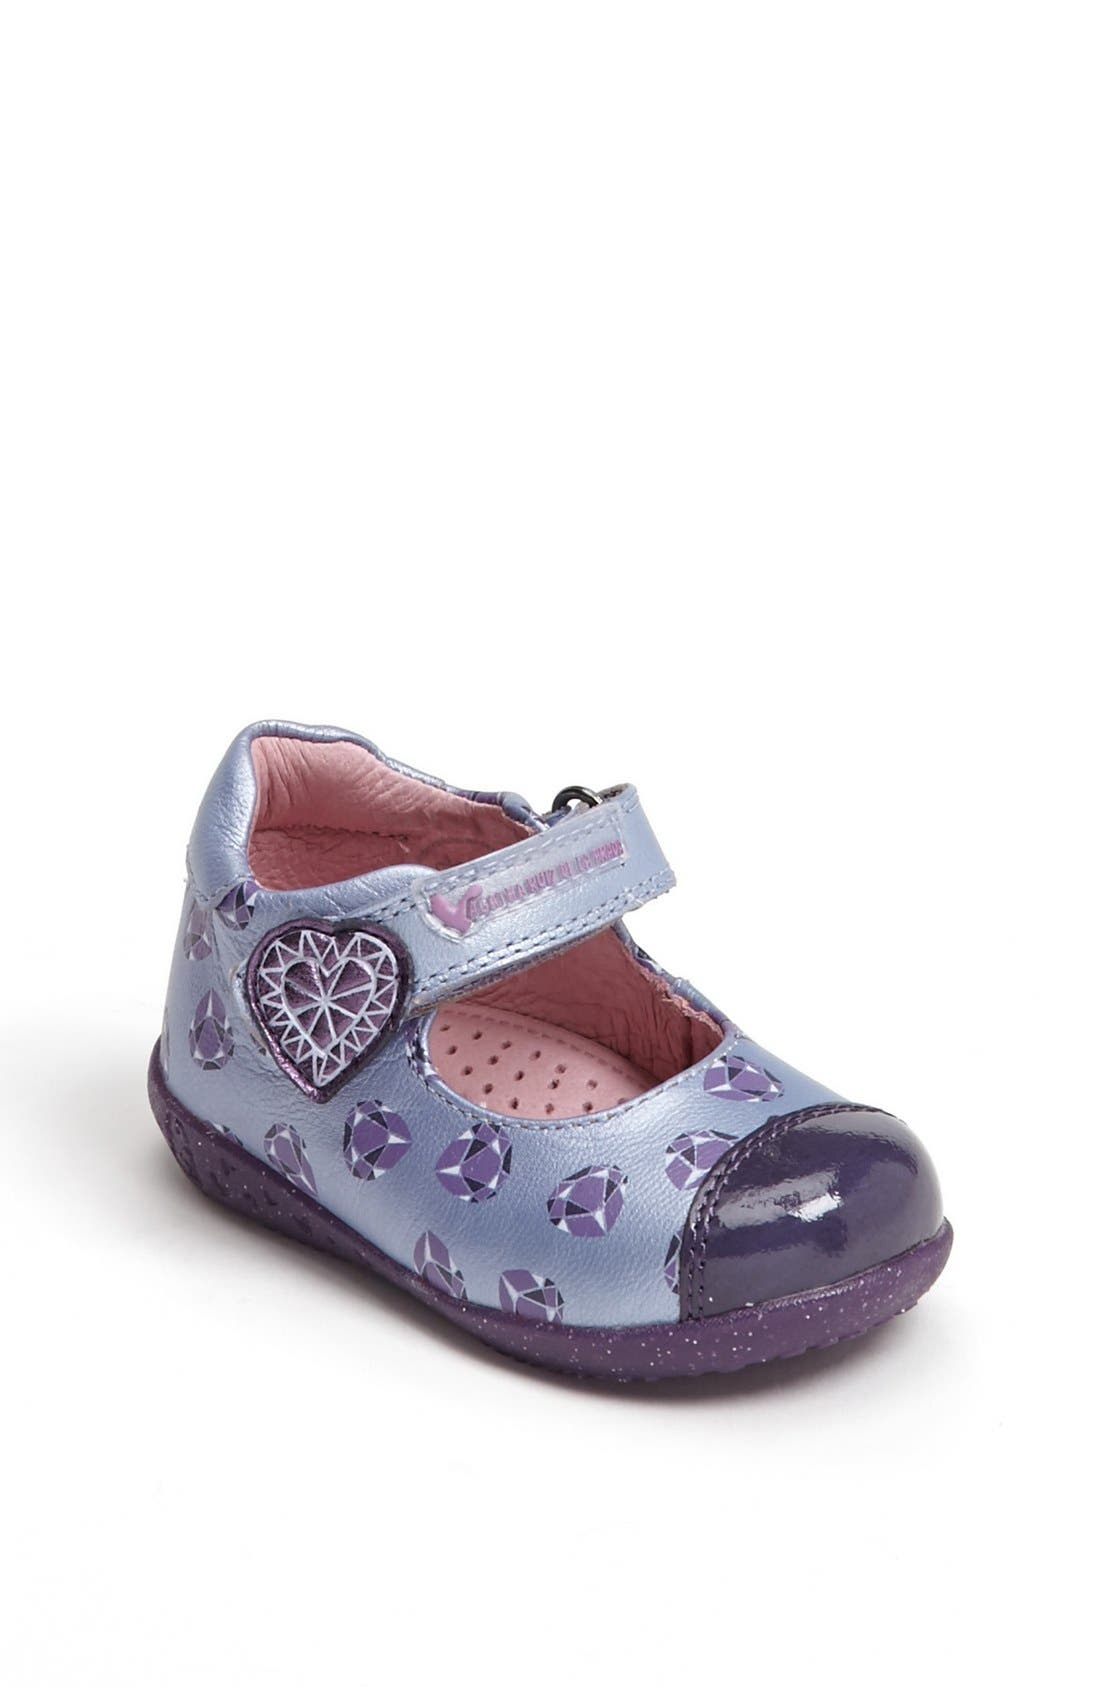 Main Image - Agatha Ruiz de la Prada 'Diamond' Mary Jane (Baby, Walker & Toddler)